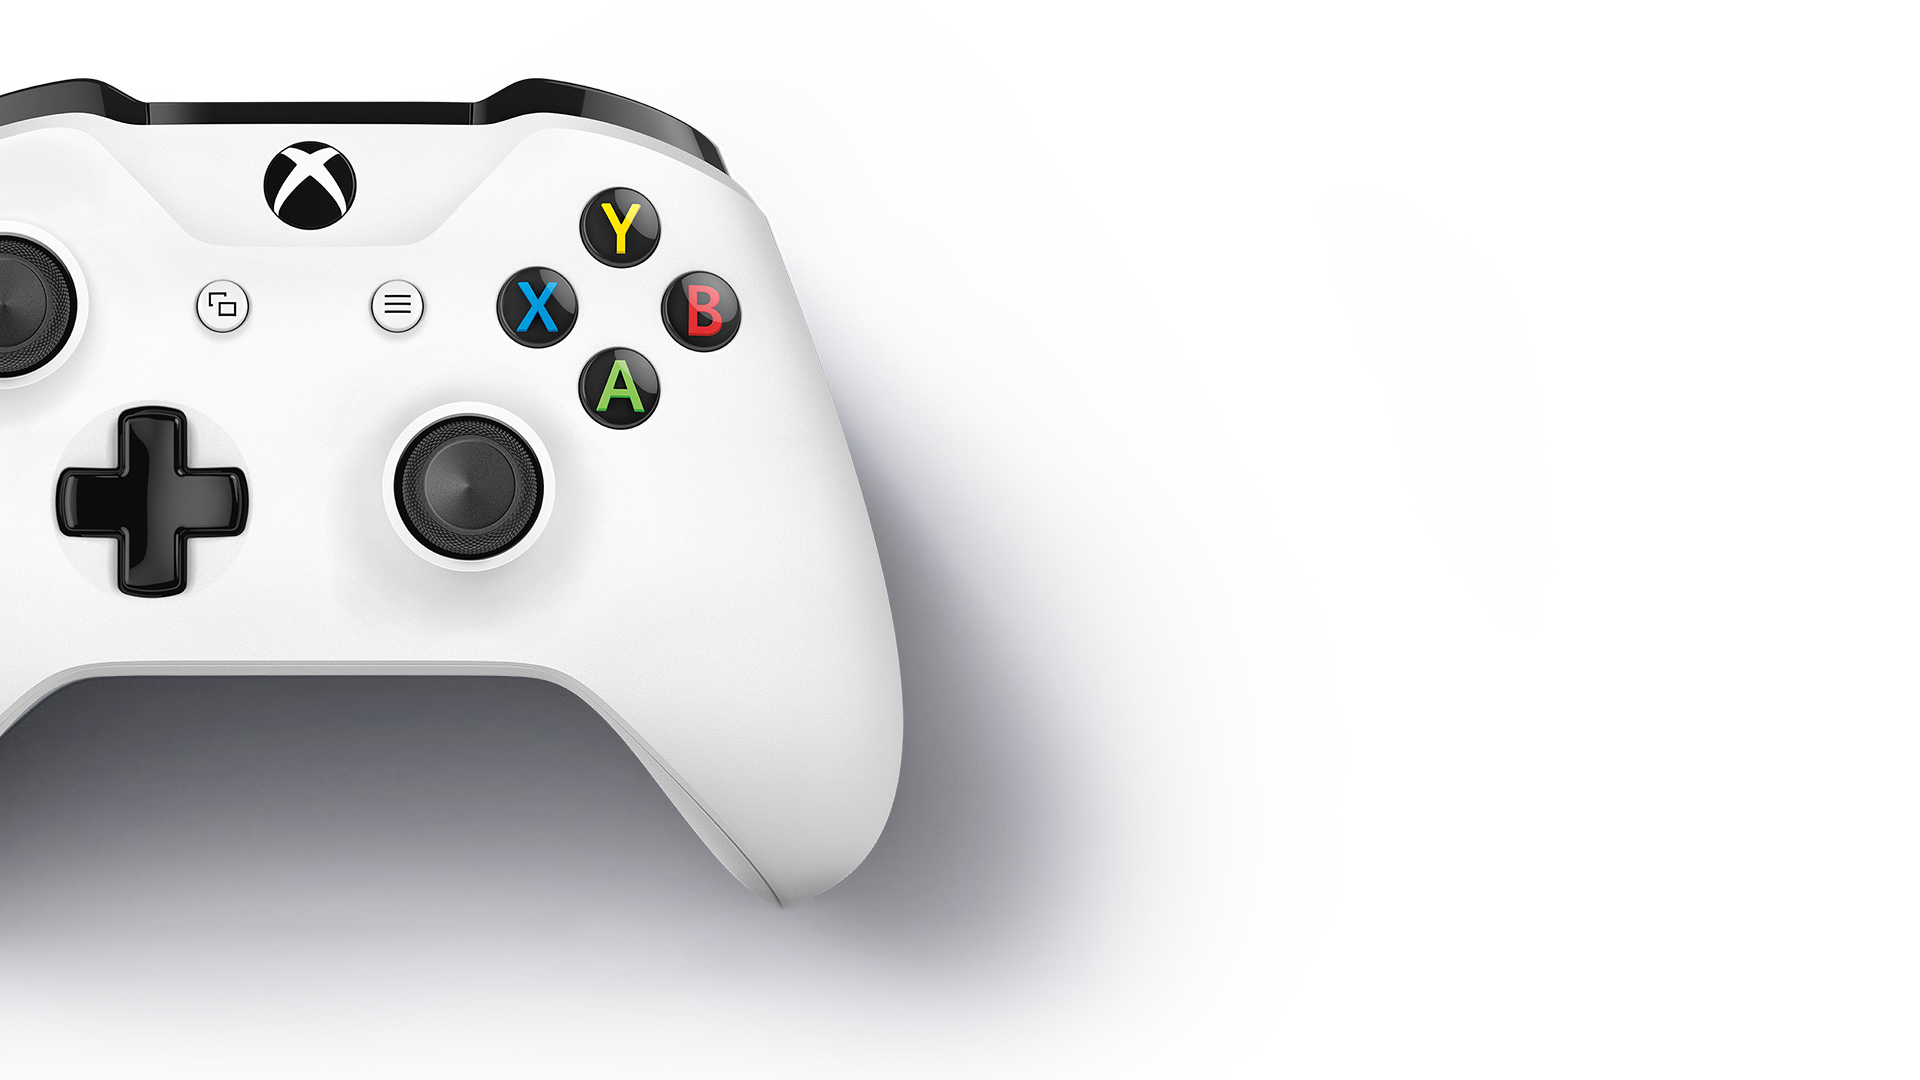 xbox 360 controller wallpaper hd impremedianet